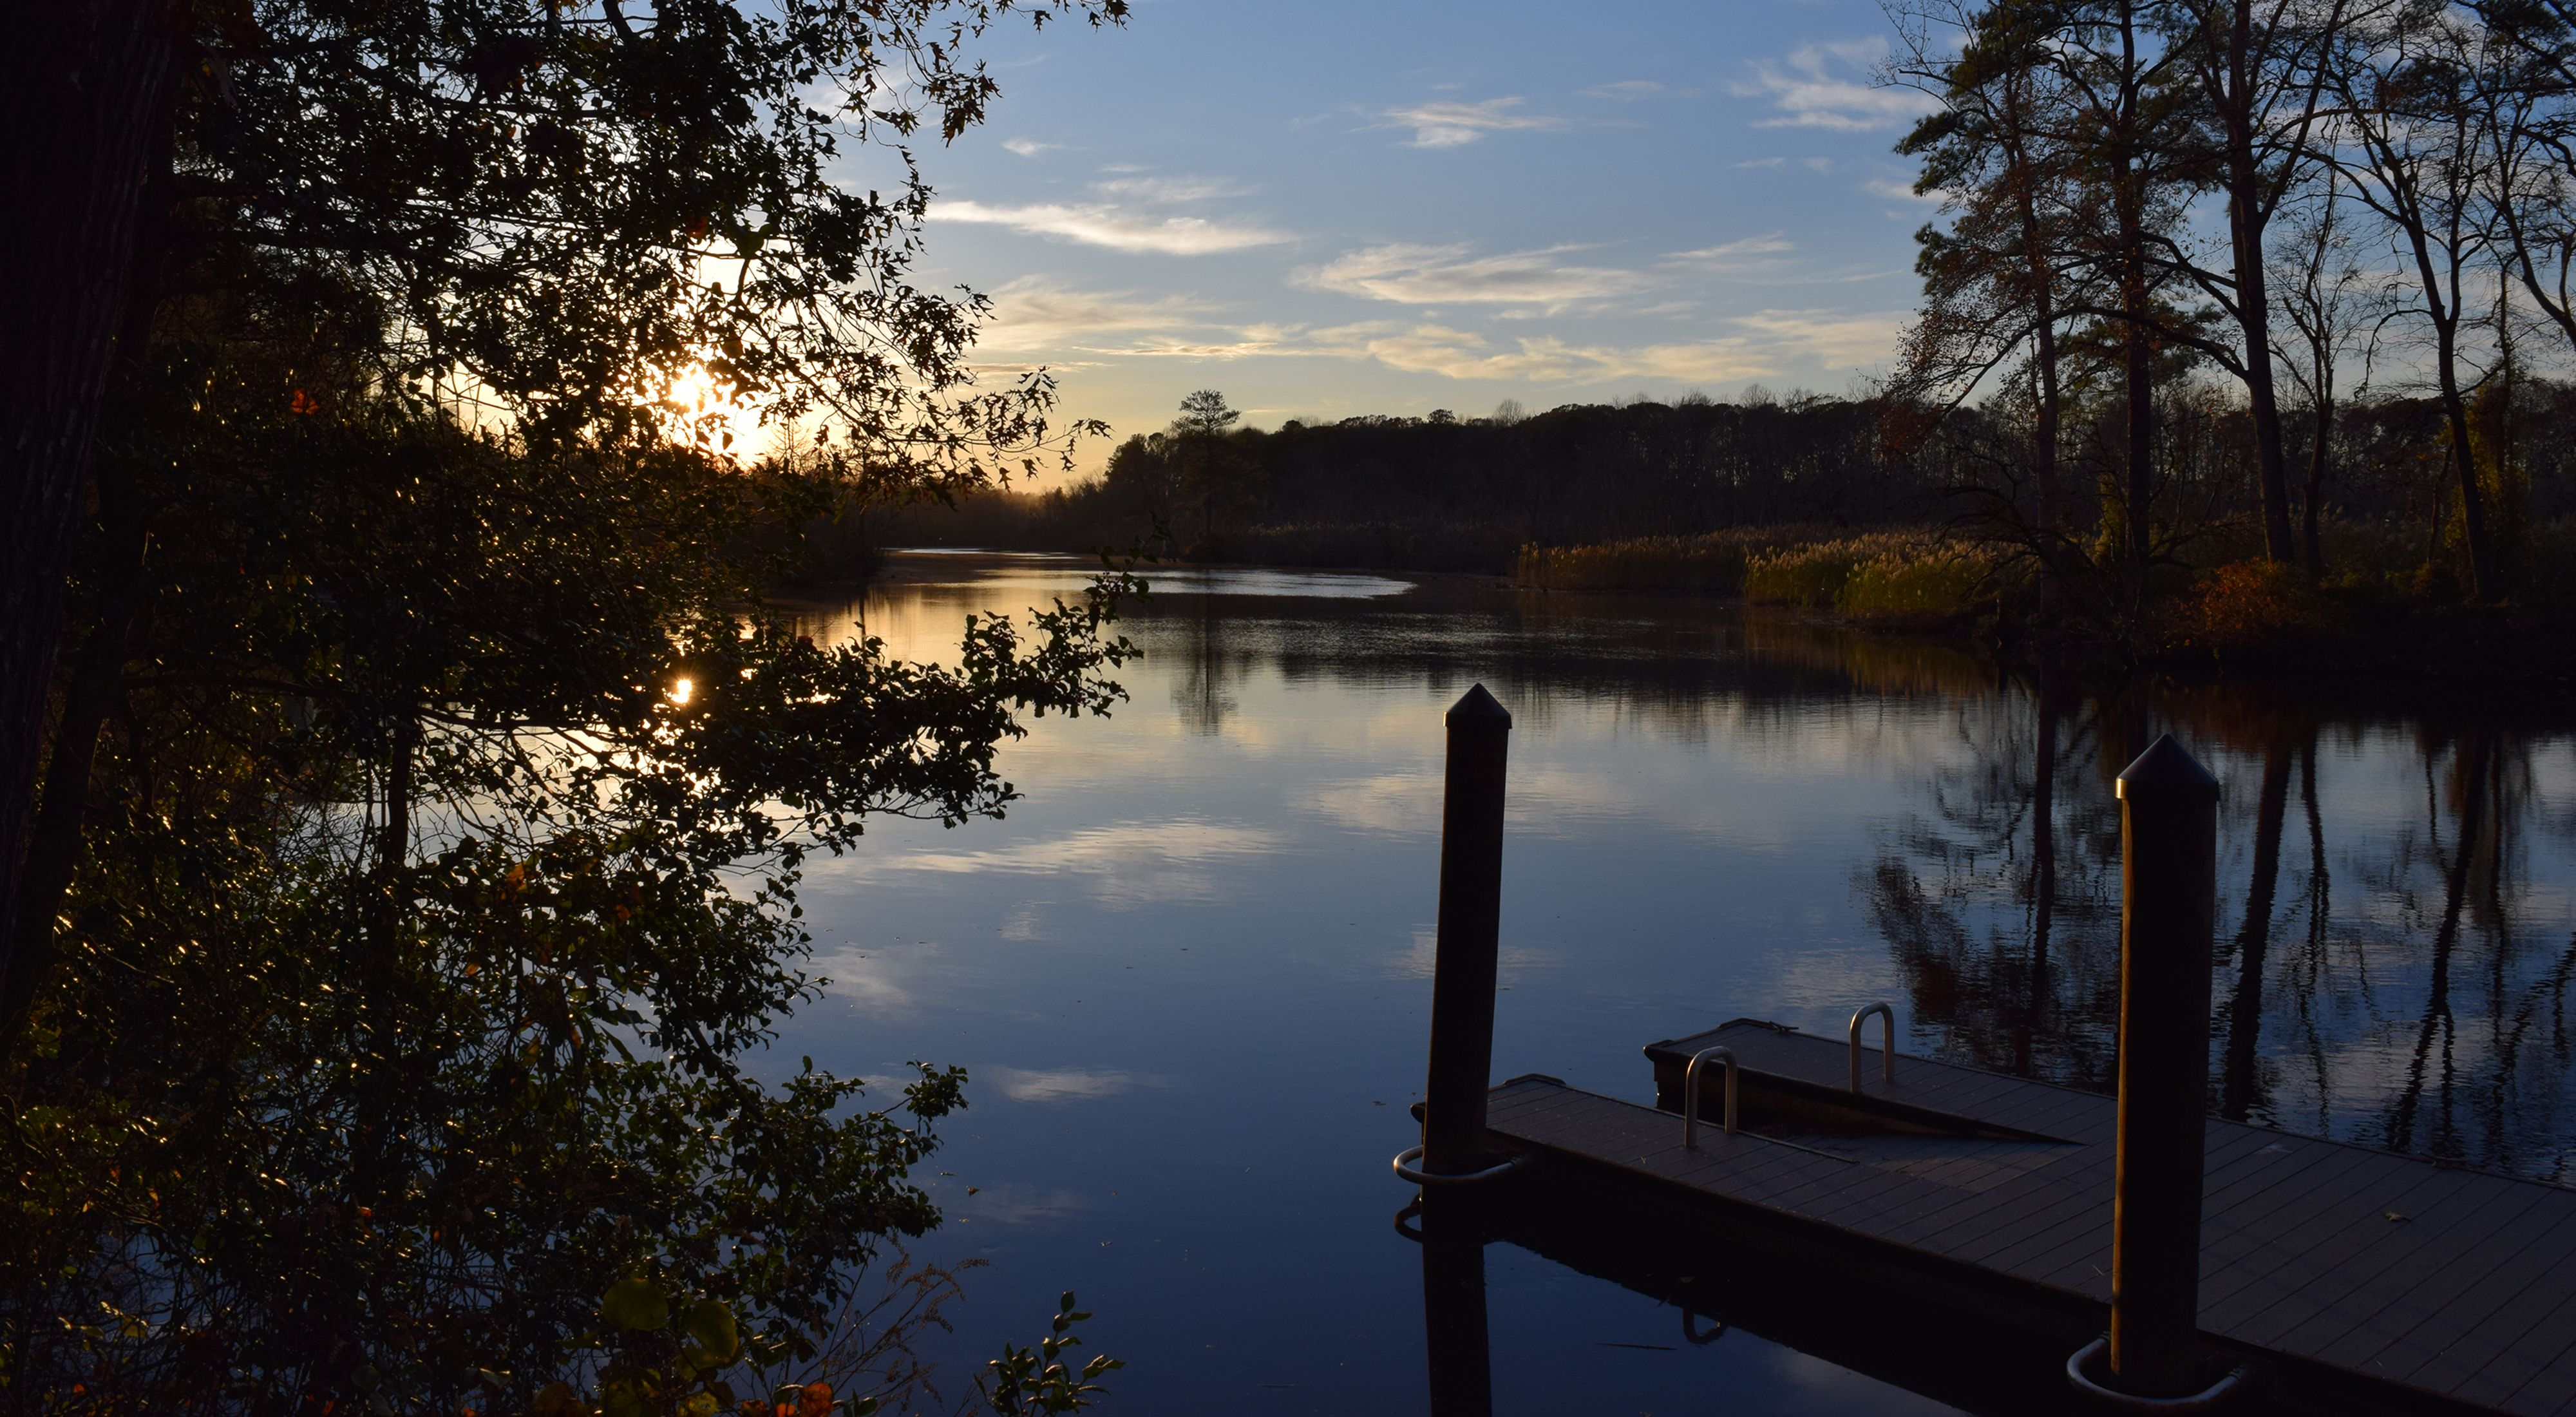 Sunset on the Broadkill River. The sun is low on the horizon, hidden by trees. The trees that line the river are in deep shadow. The still water reflects the clouds in the sky above.